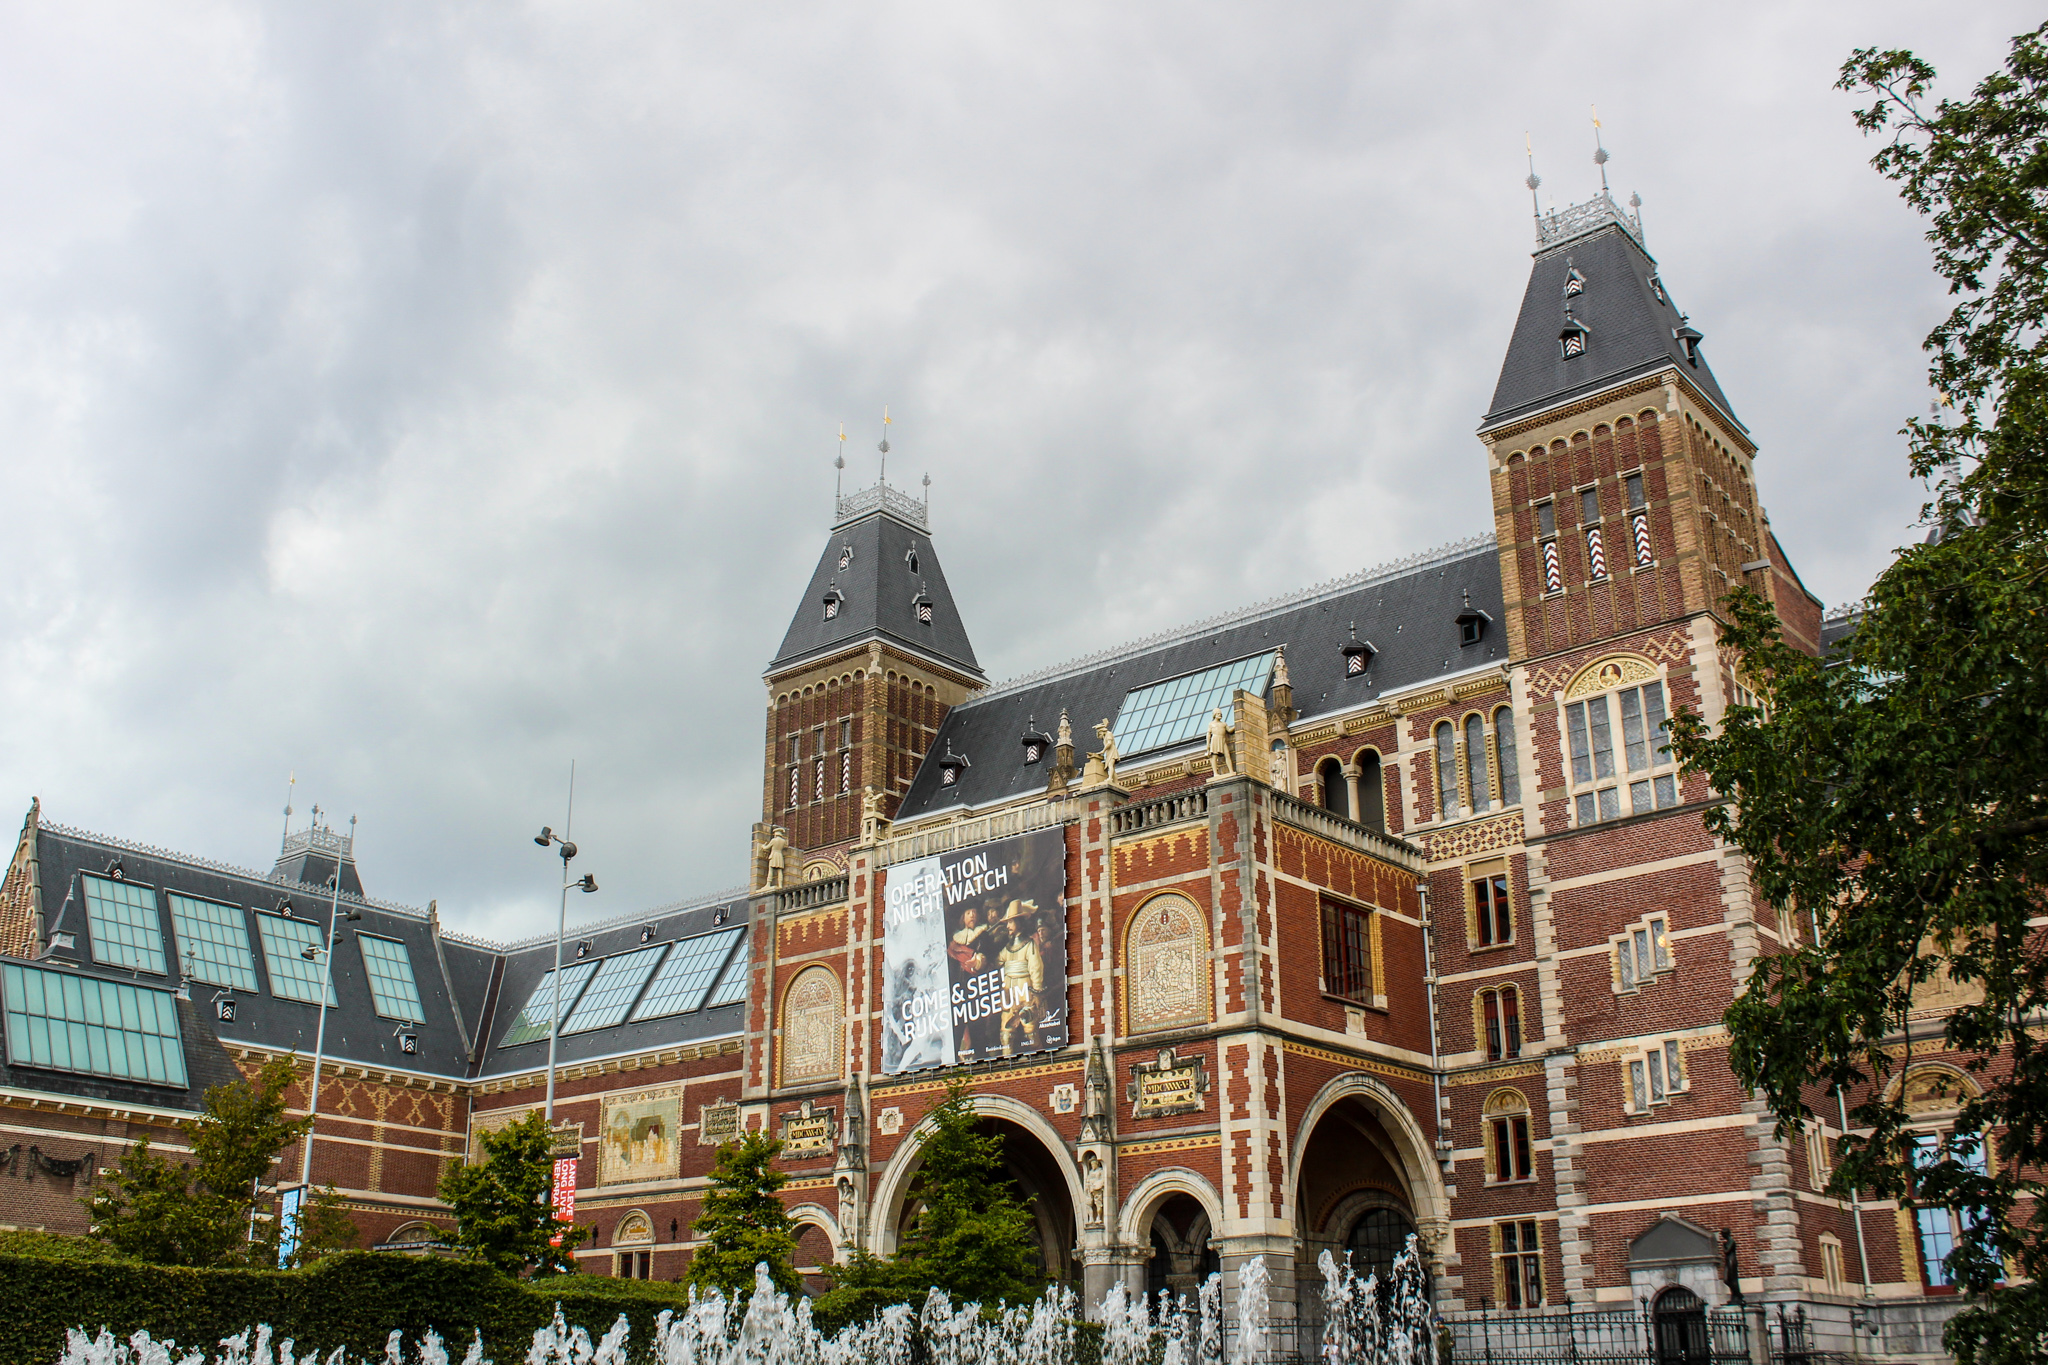 amsterdam worth visiting for the museums